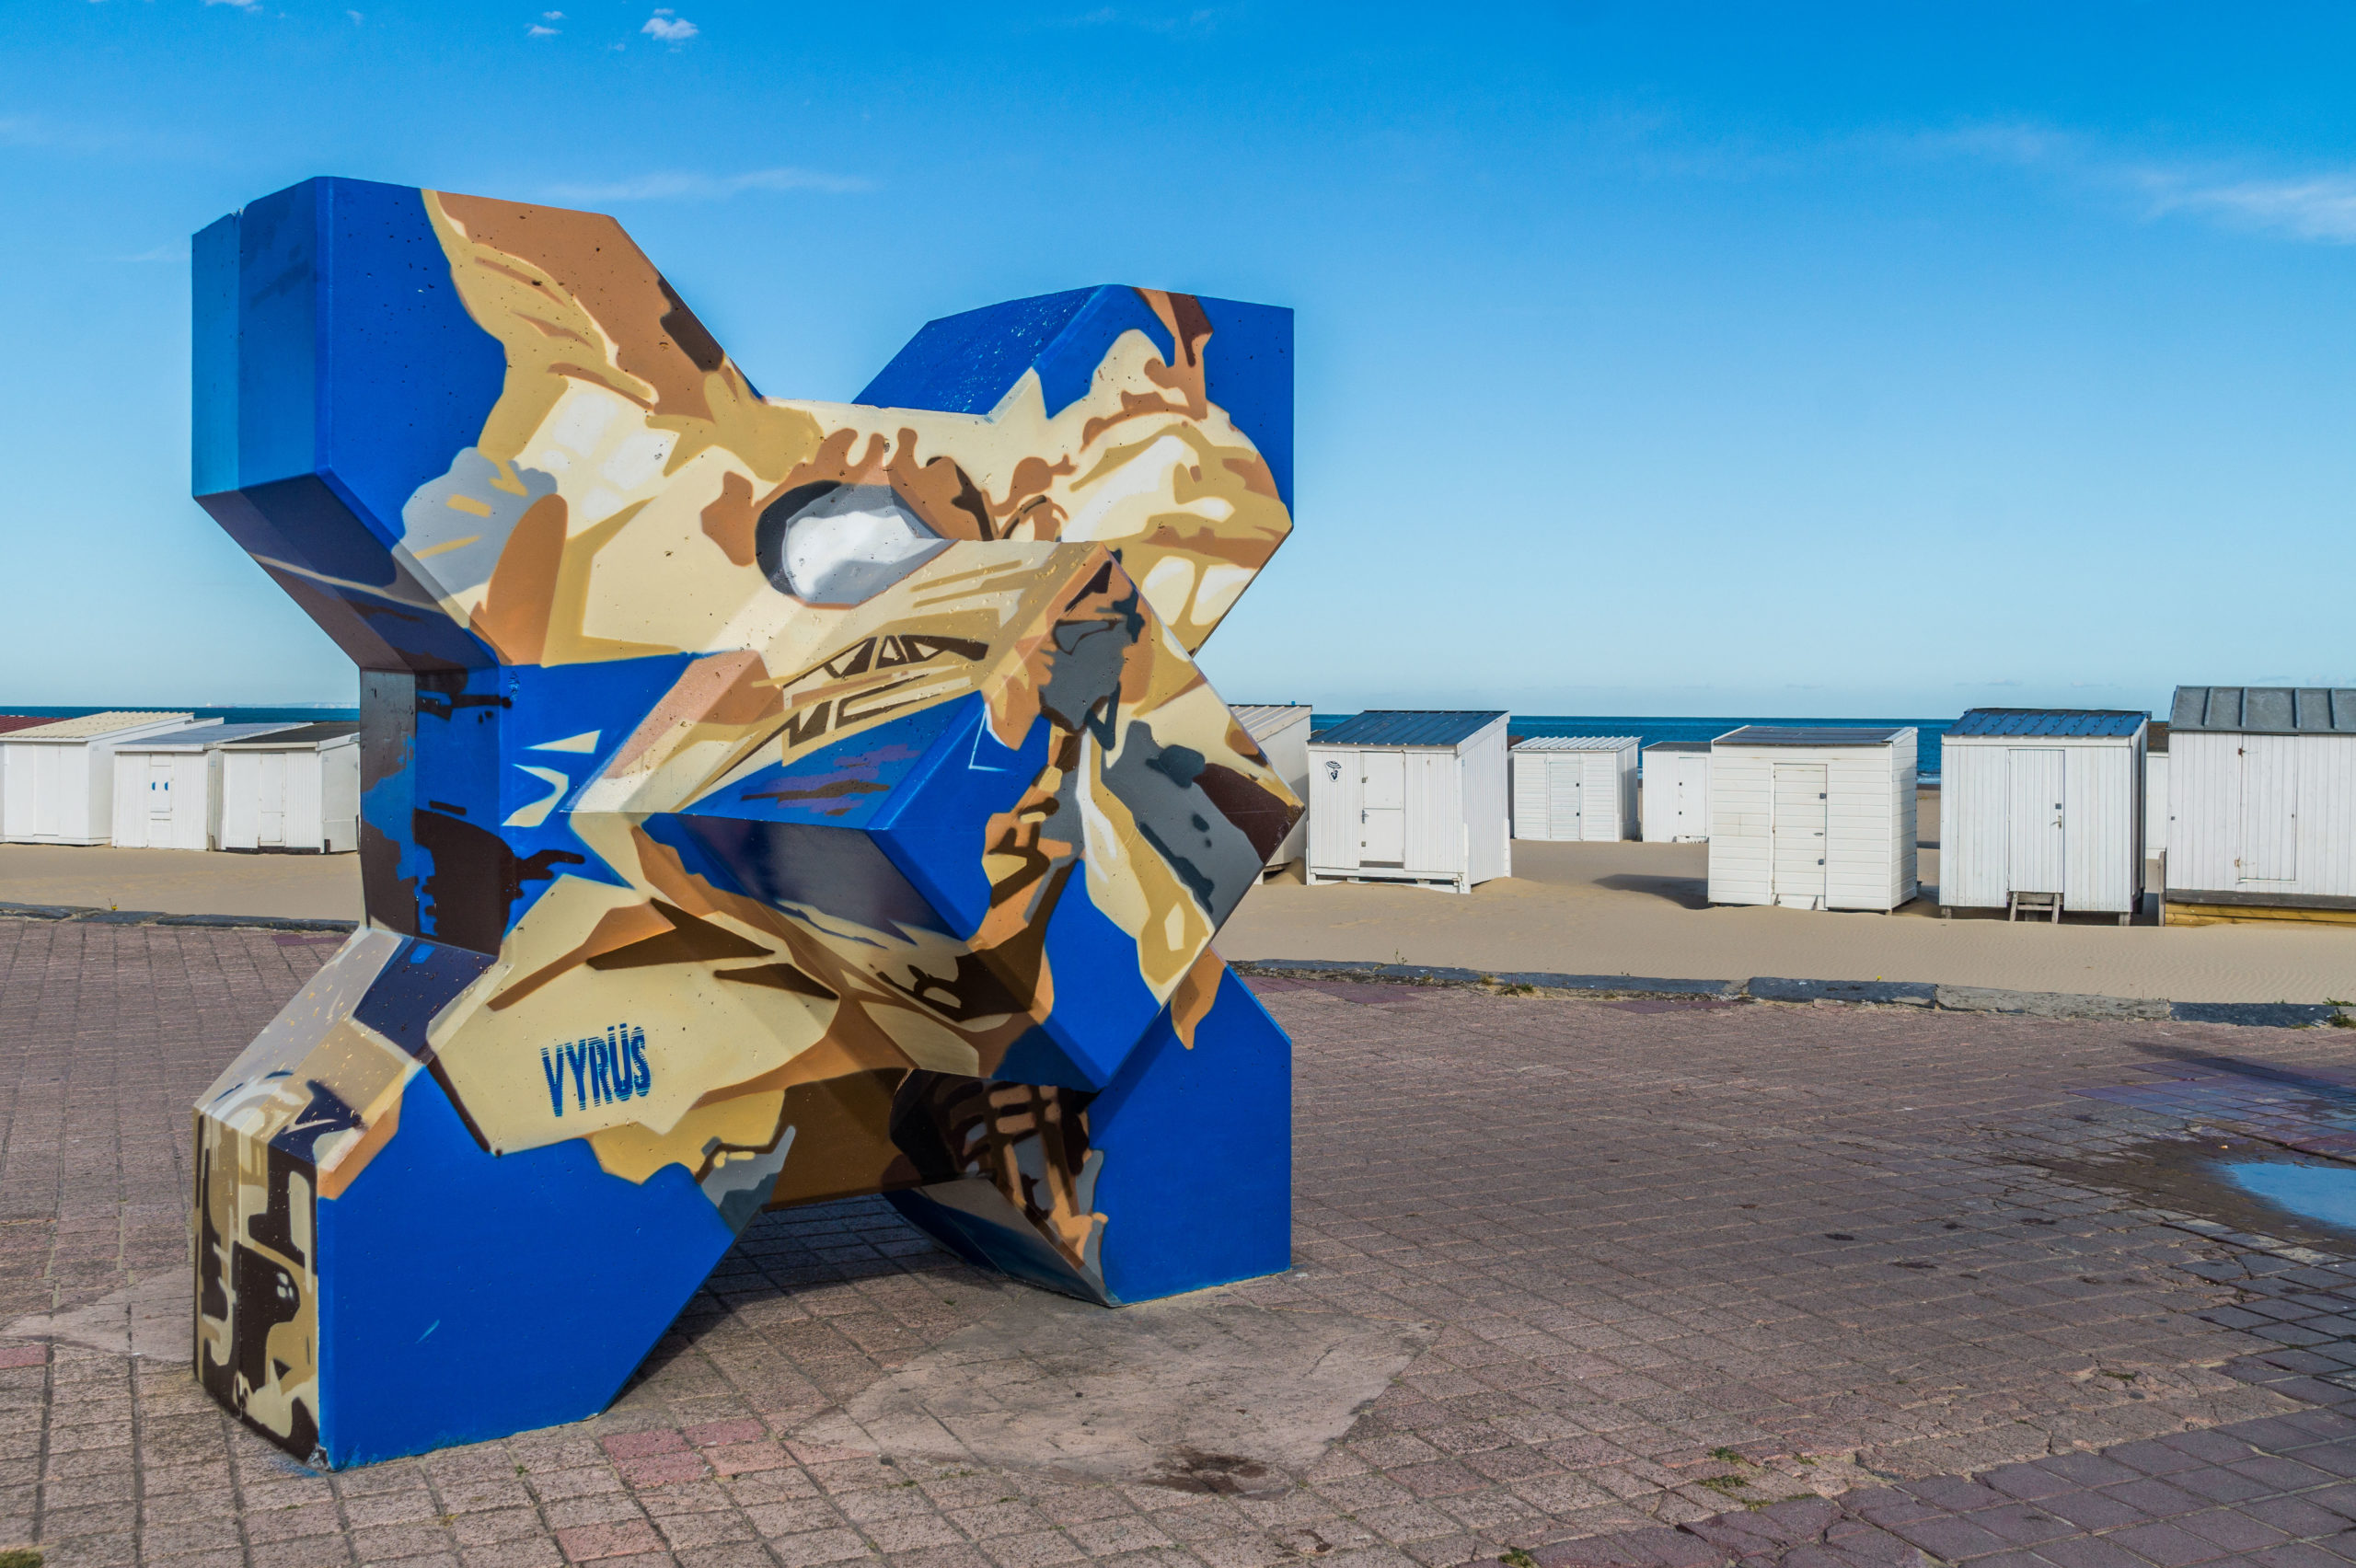 The Best Street Art Spots In  Calais